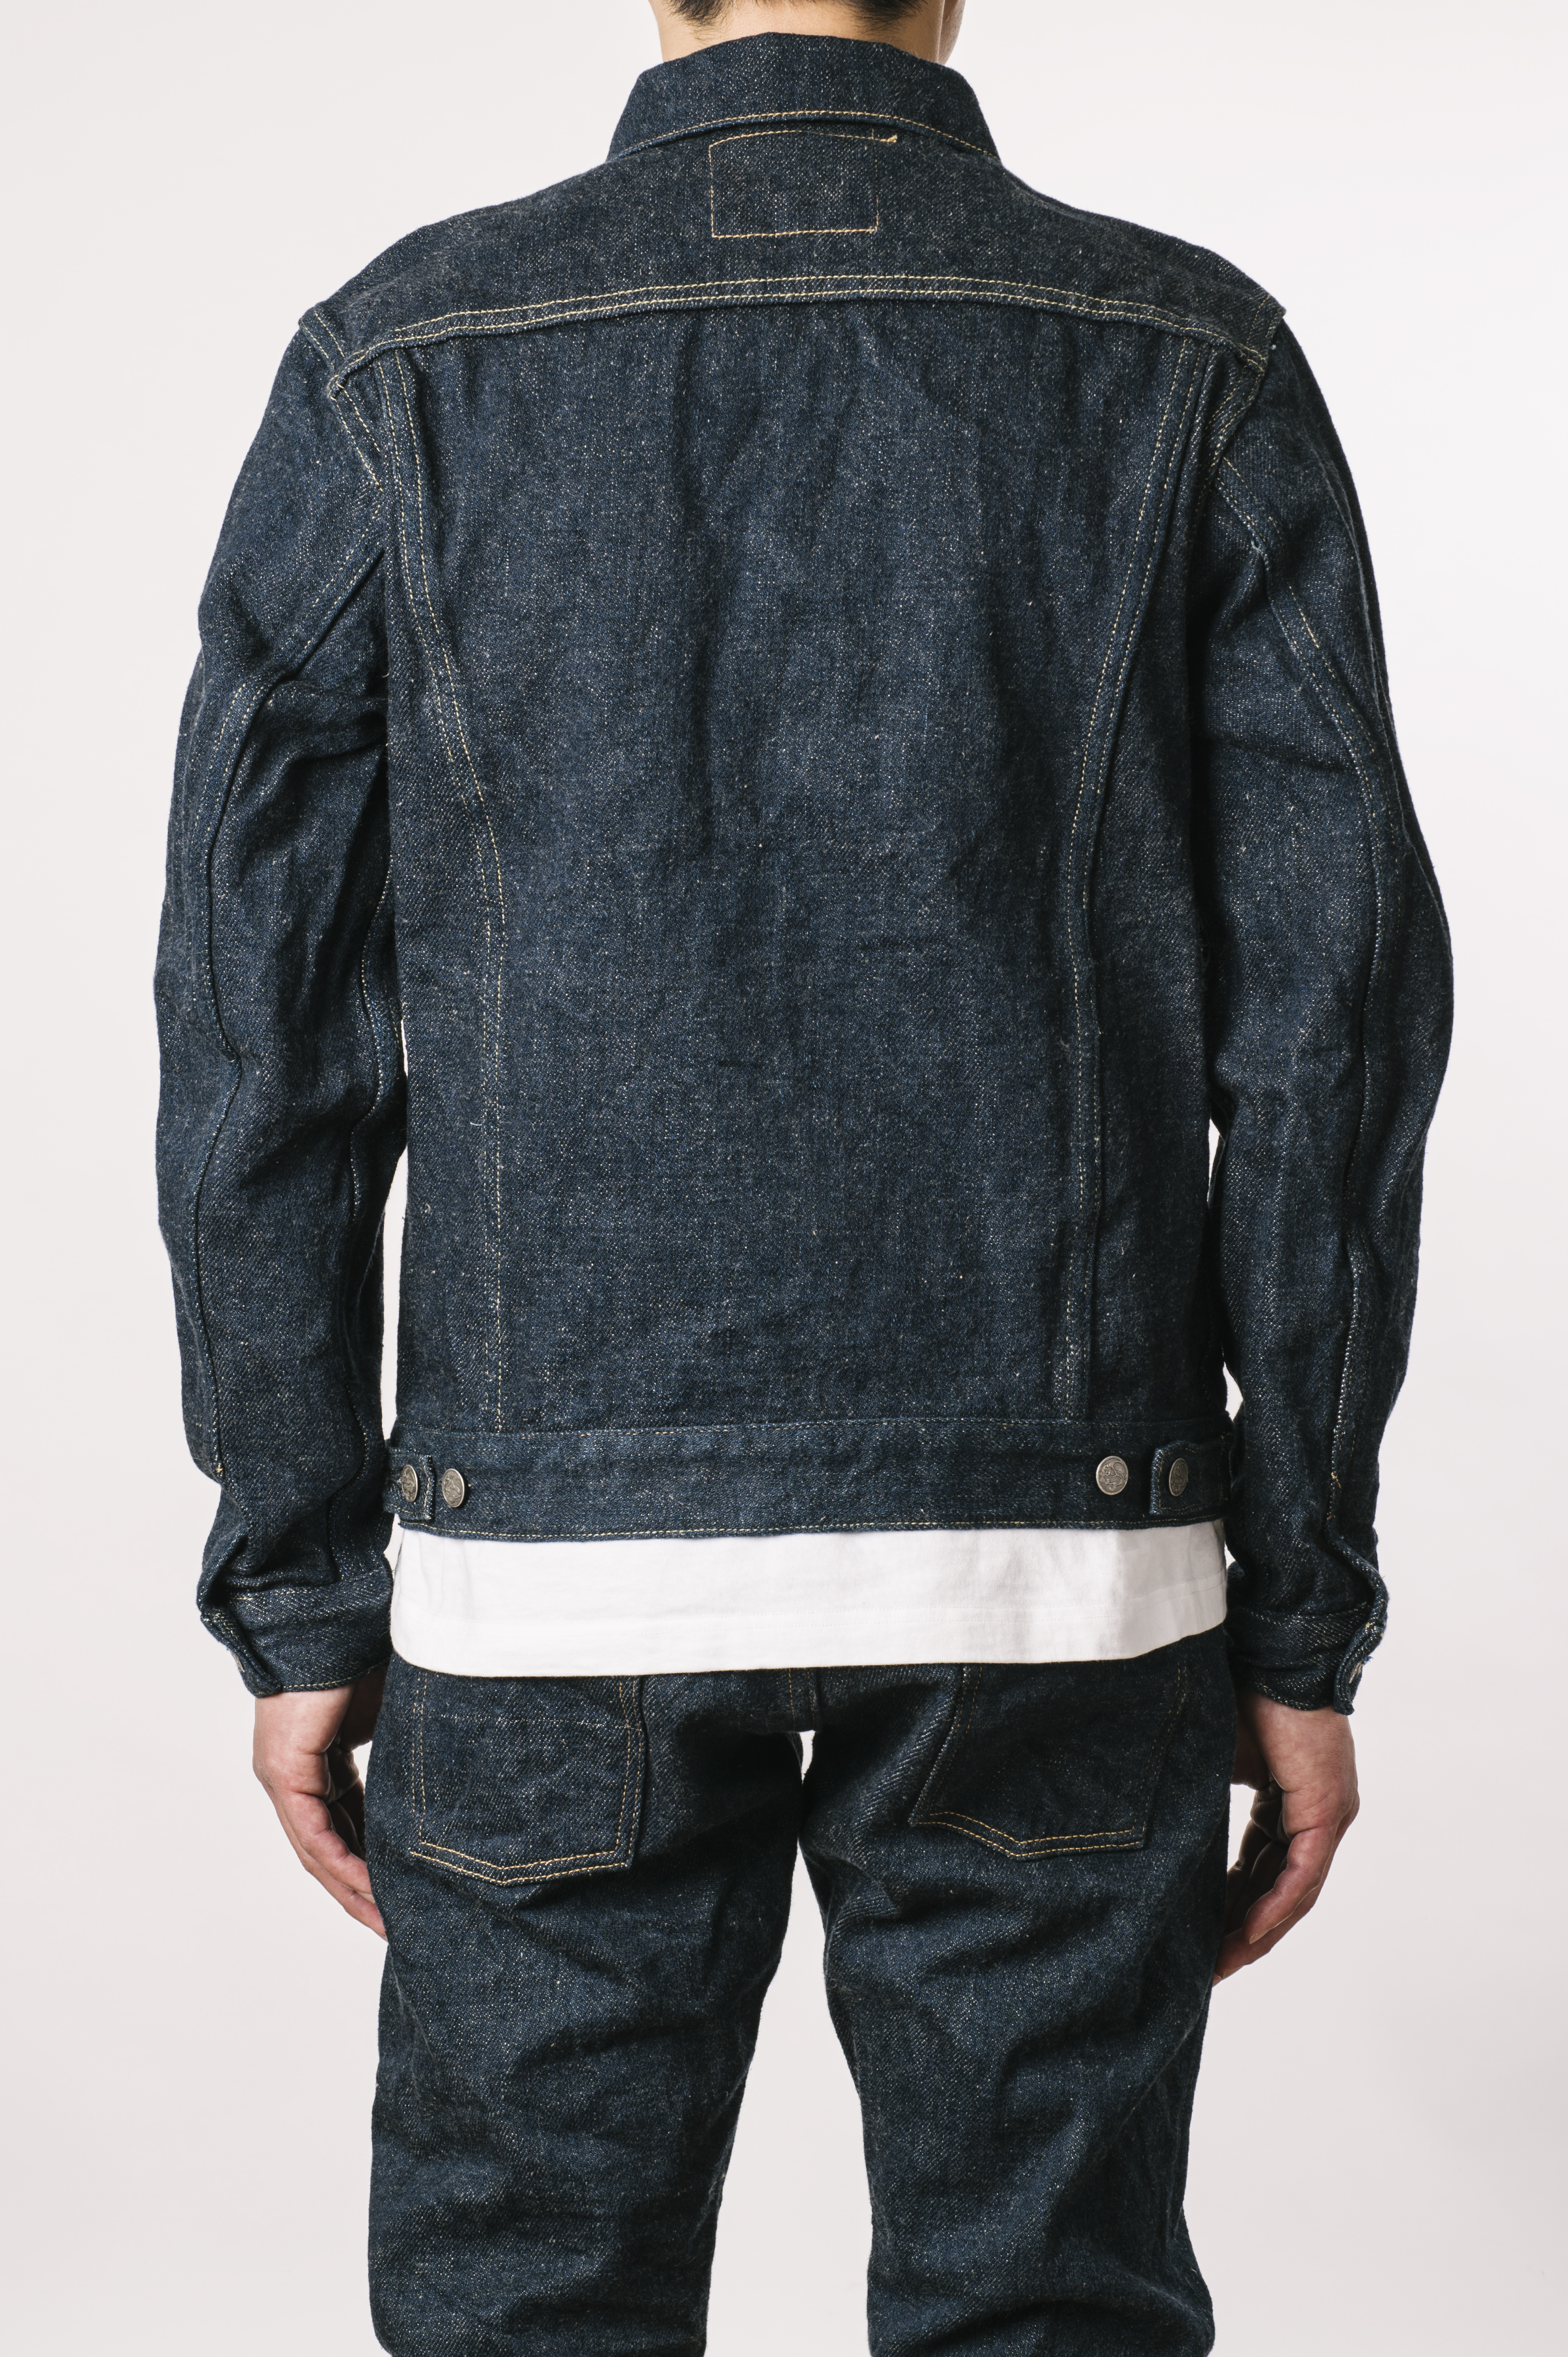 OTJKT3 ONI x TANUKI Collaboration 21.5oz Secret Denim Signature 3rd Jacket with handwarmers,, large image number 8